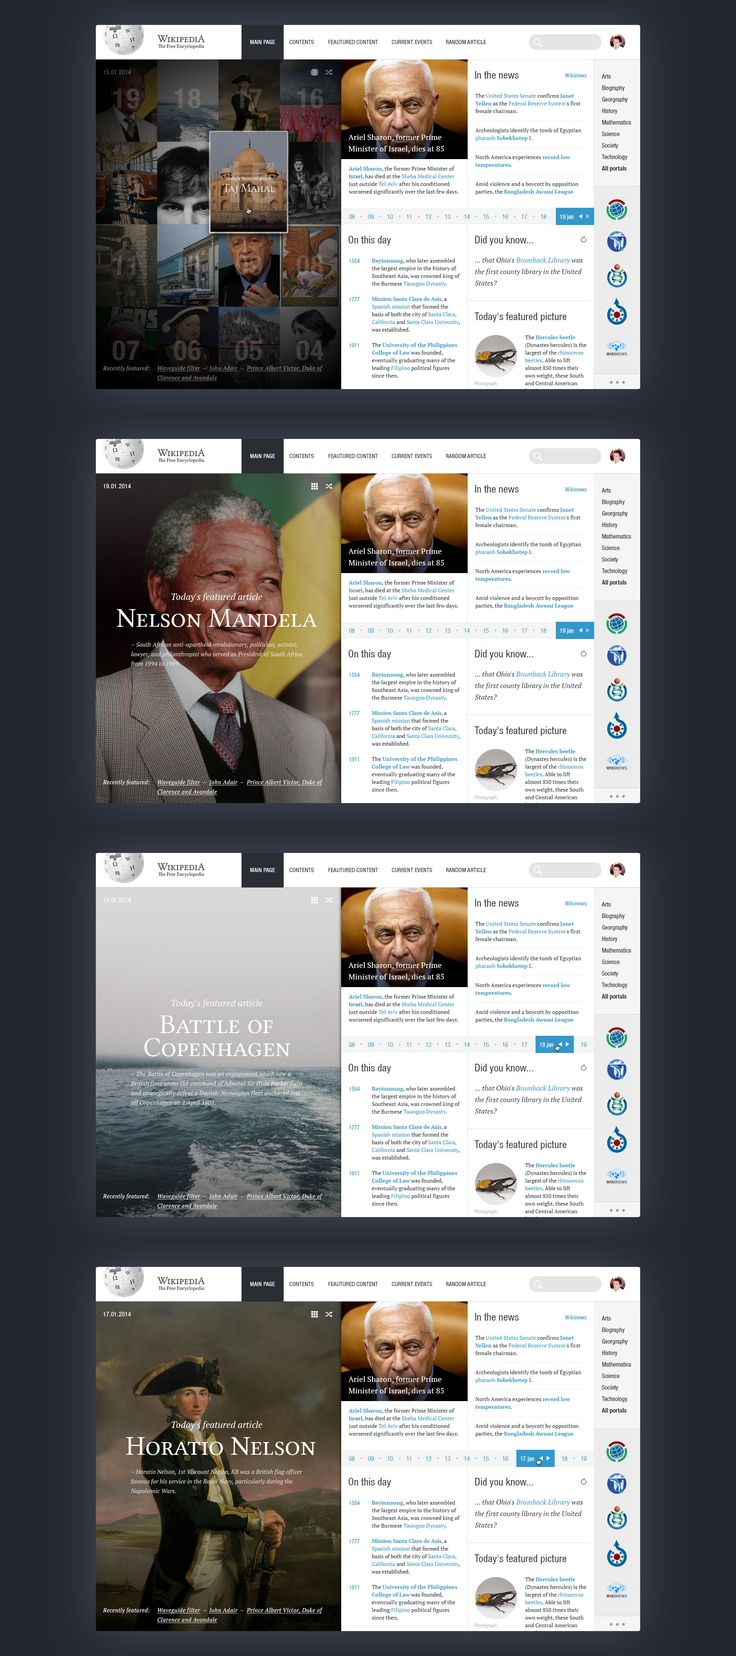 Wikipedia redesign by George Kvasnikov. I thought it was a twitter redesign at first. Nice design intentions.